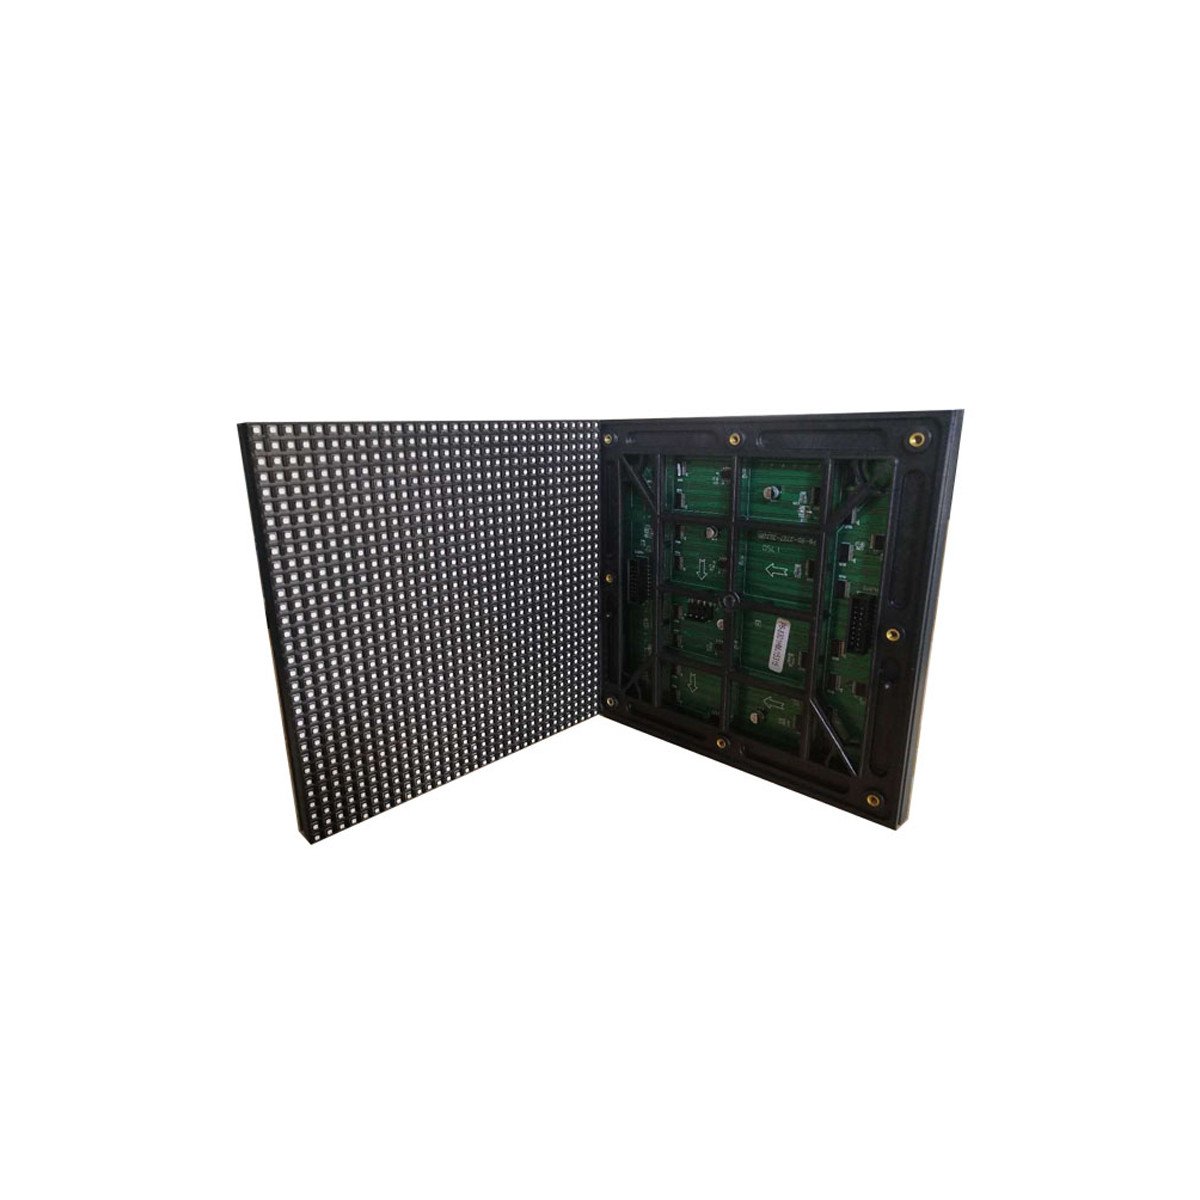 P6 Outdoor SMD LED Display Module 192*192mm SMD2727 5000cd/㎡ Brightness 1920Hz High Refresh